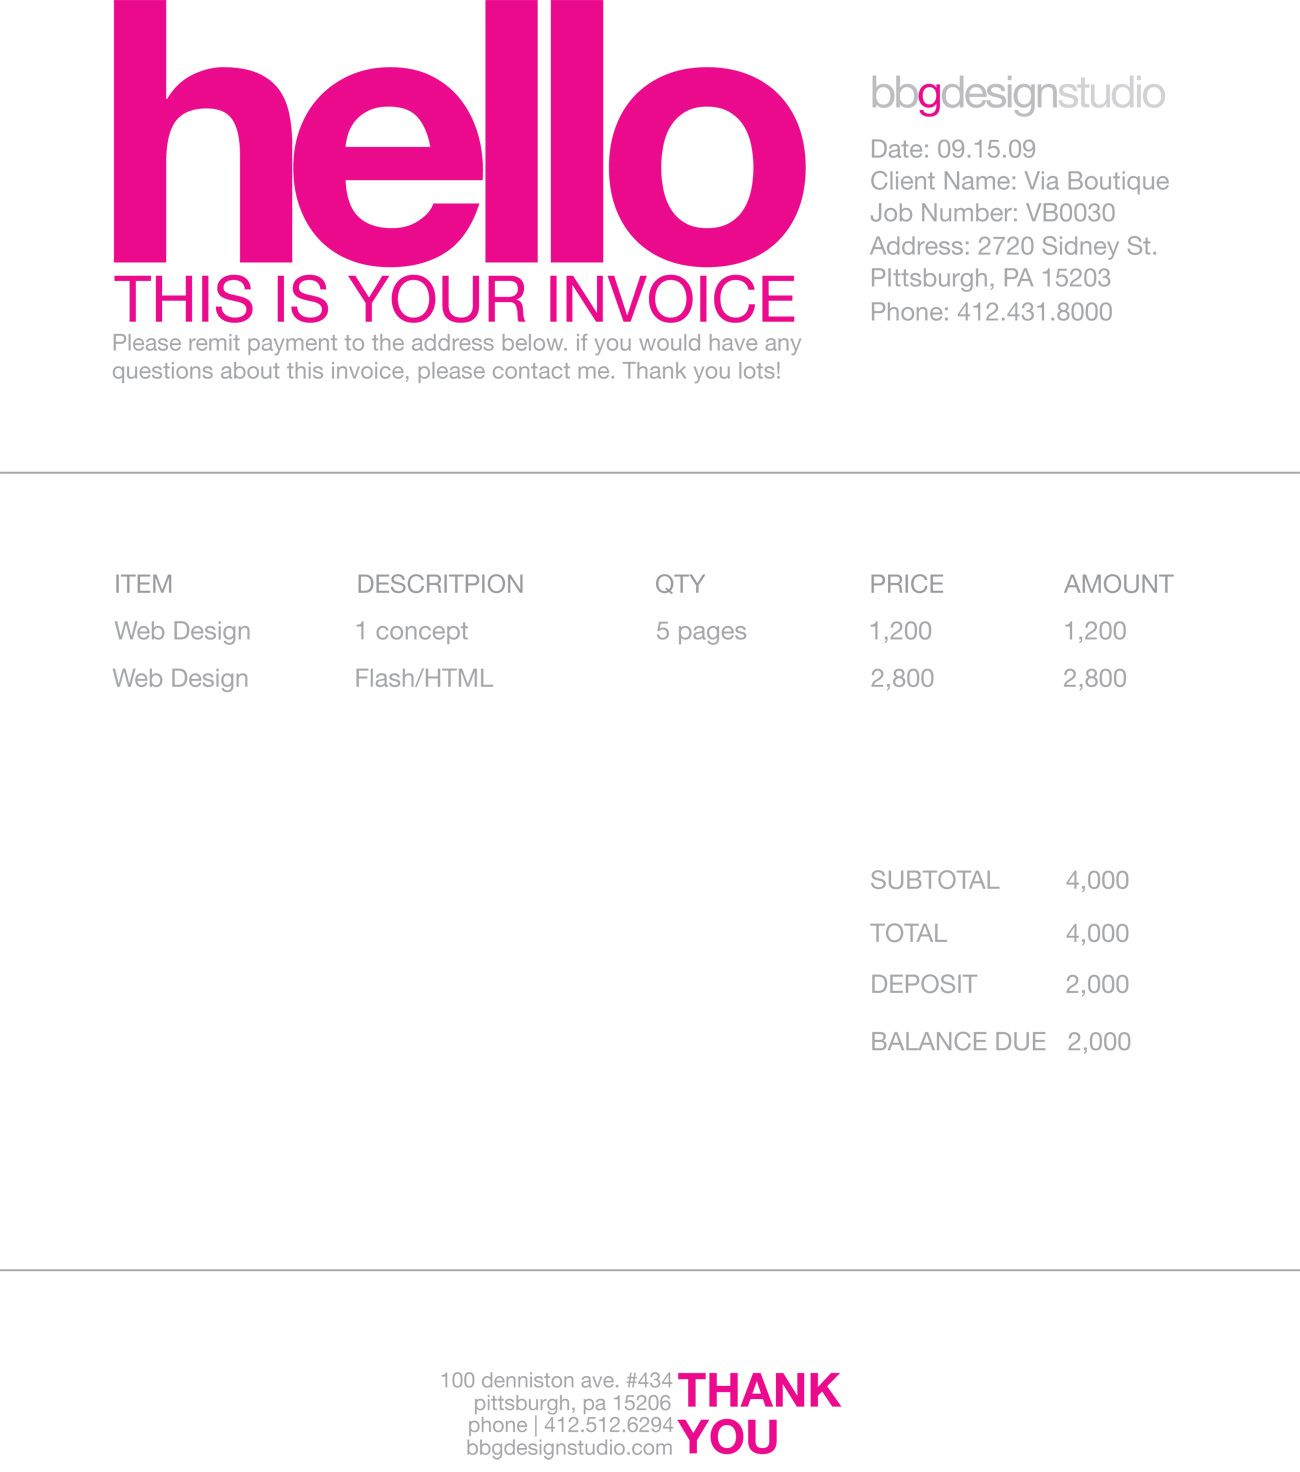 Coolmathgamesus  Marvellous  Images About Invoice Design On Pinterest With Heavenly Best Free Online Invoicing Besides How To Invoice Paypal Furthermore Acura Tl Invoice Price With Comely Basic Invoice Form Also Pro Forma Invoice Example In Addition Invoice With Square And Freeagent Invoice As Well As Carbon Copy Invoice Pads Additionally Free Blank Printable Invoices Forms From Pinterestcom With Coolmathgamesus  Heavenly  Images About Invoice Design On Pinterest With Comely Best Free Online Invoicing Besides How To Invoice Paypal Furthermore Acura Tl Invoice Price And Marvellous Basic Invoice Form Also Pro Forma Invoice Example In Addition Invoice With Square From Pinterestcom